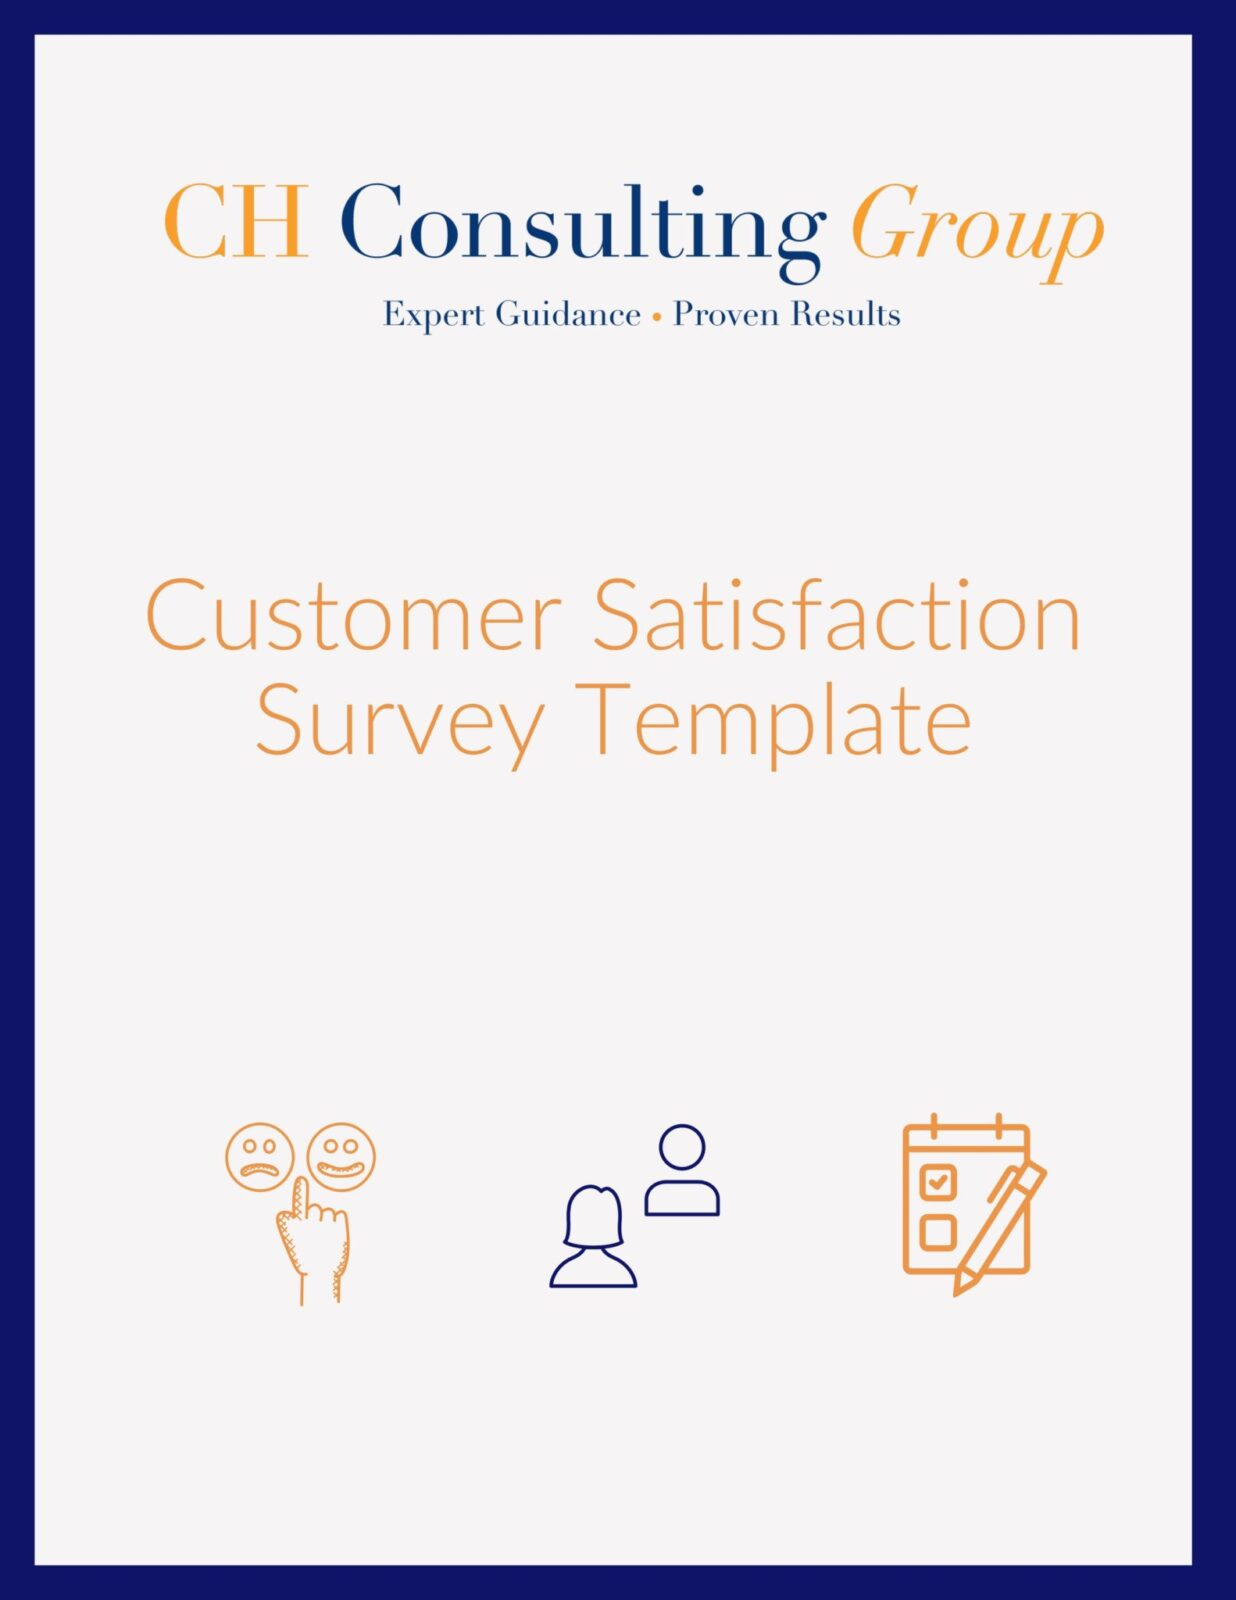 contact center tools ch consulting